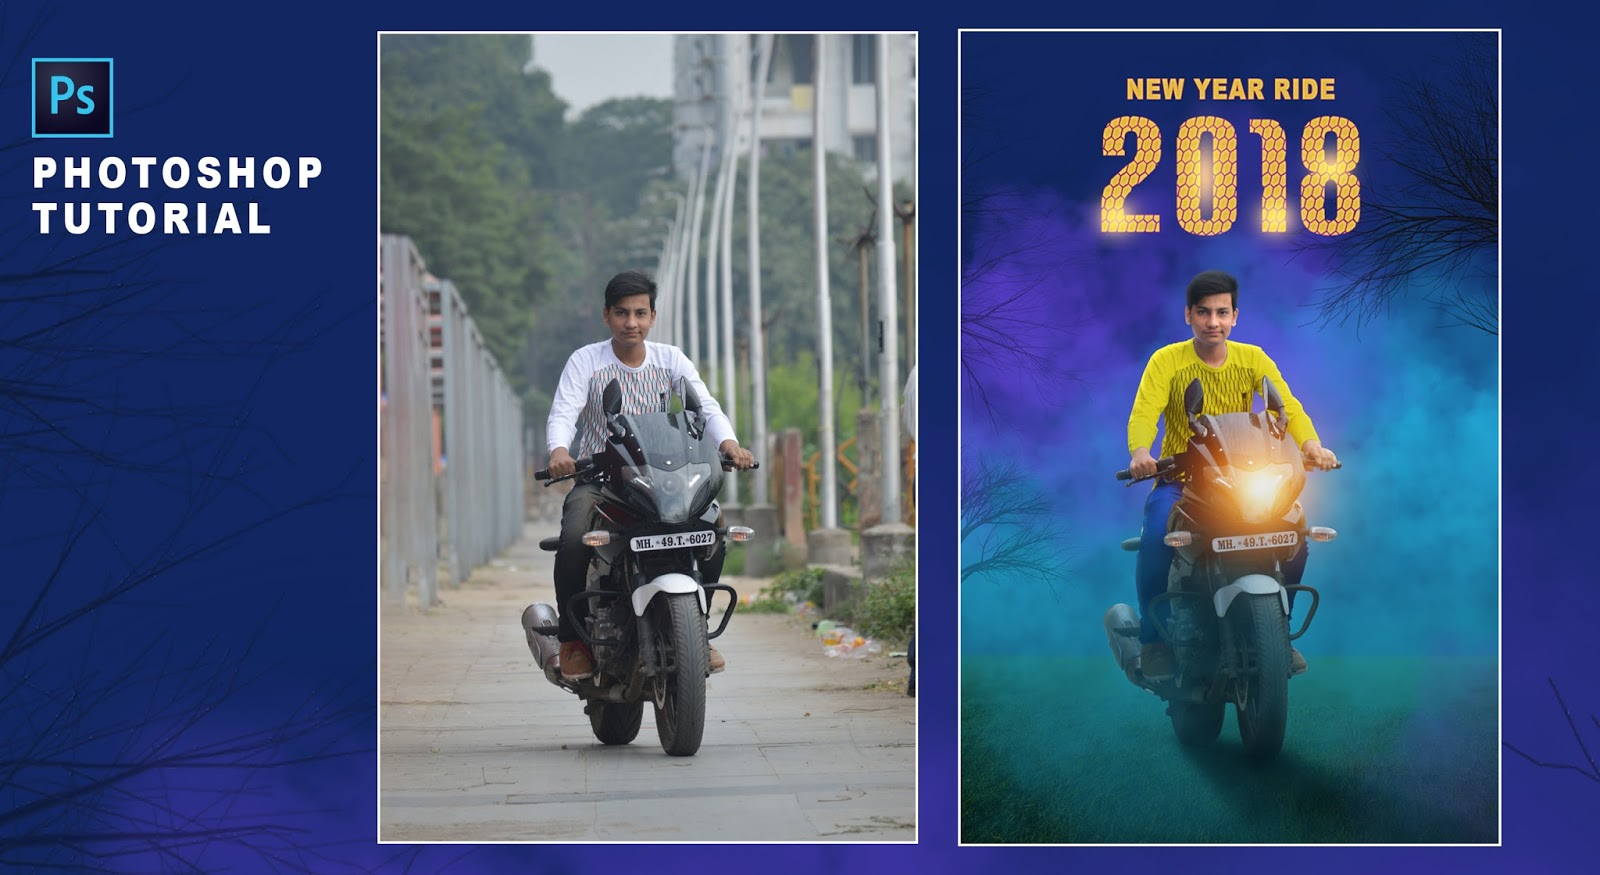 New year special editing 2018 photoshop photo editing new year special editing 2018 photoshop photo editing photoshop manipulation editing tutorial baditri Gallery